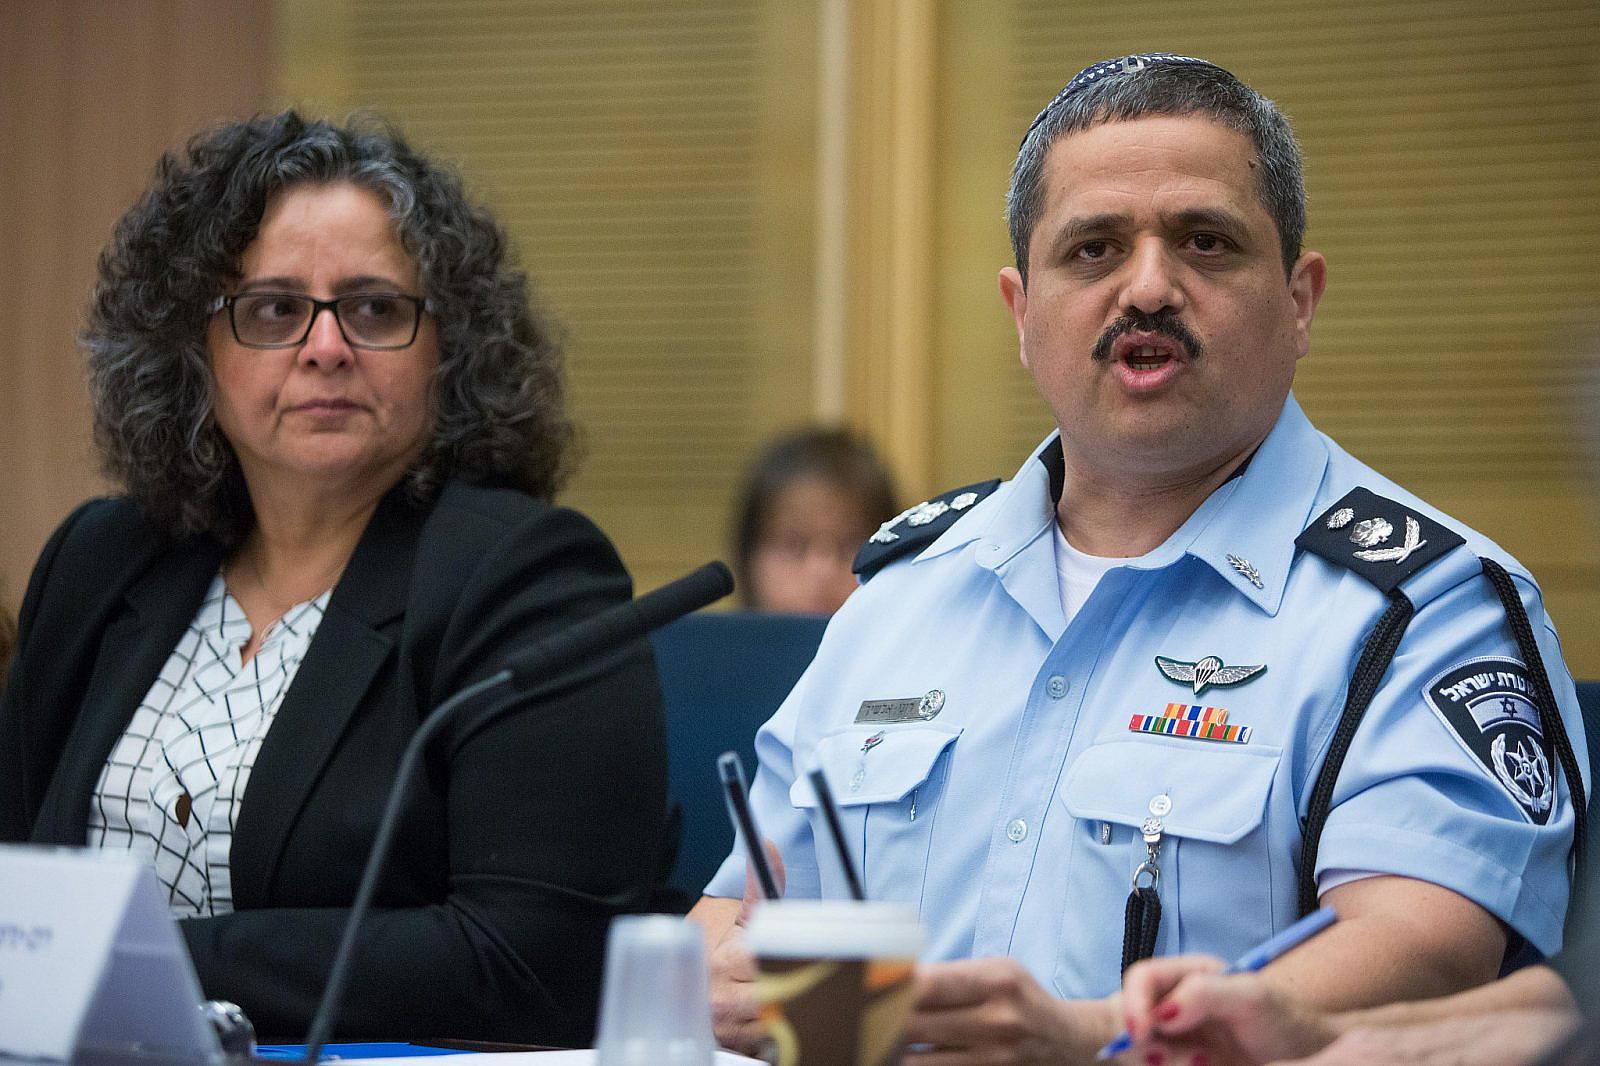 Joint List MK Aida Toma Sliman and Israeli Chief of Police Roni Alsheikh attend a Status of Women Committee meeting regarding sexual harassment in the Israeli police at the Knesset, March 29, 2016. (Yonatan Sindel/Flash90)